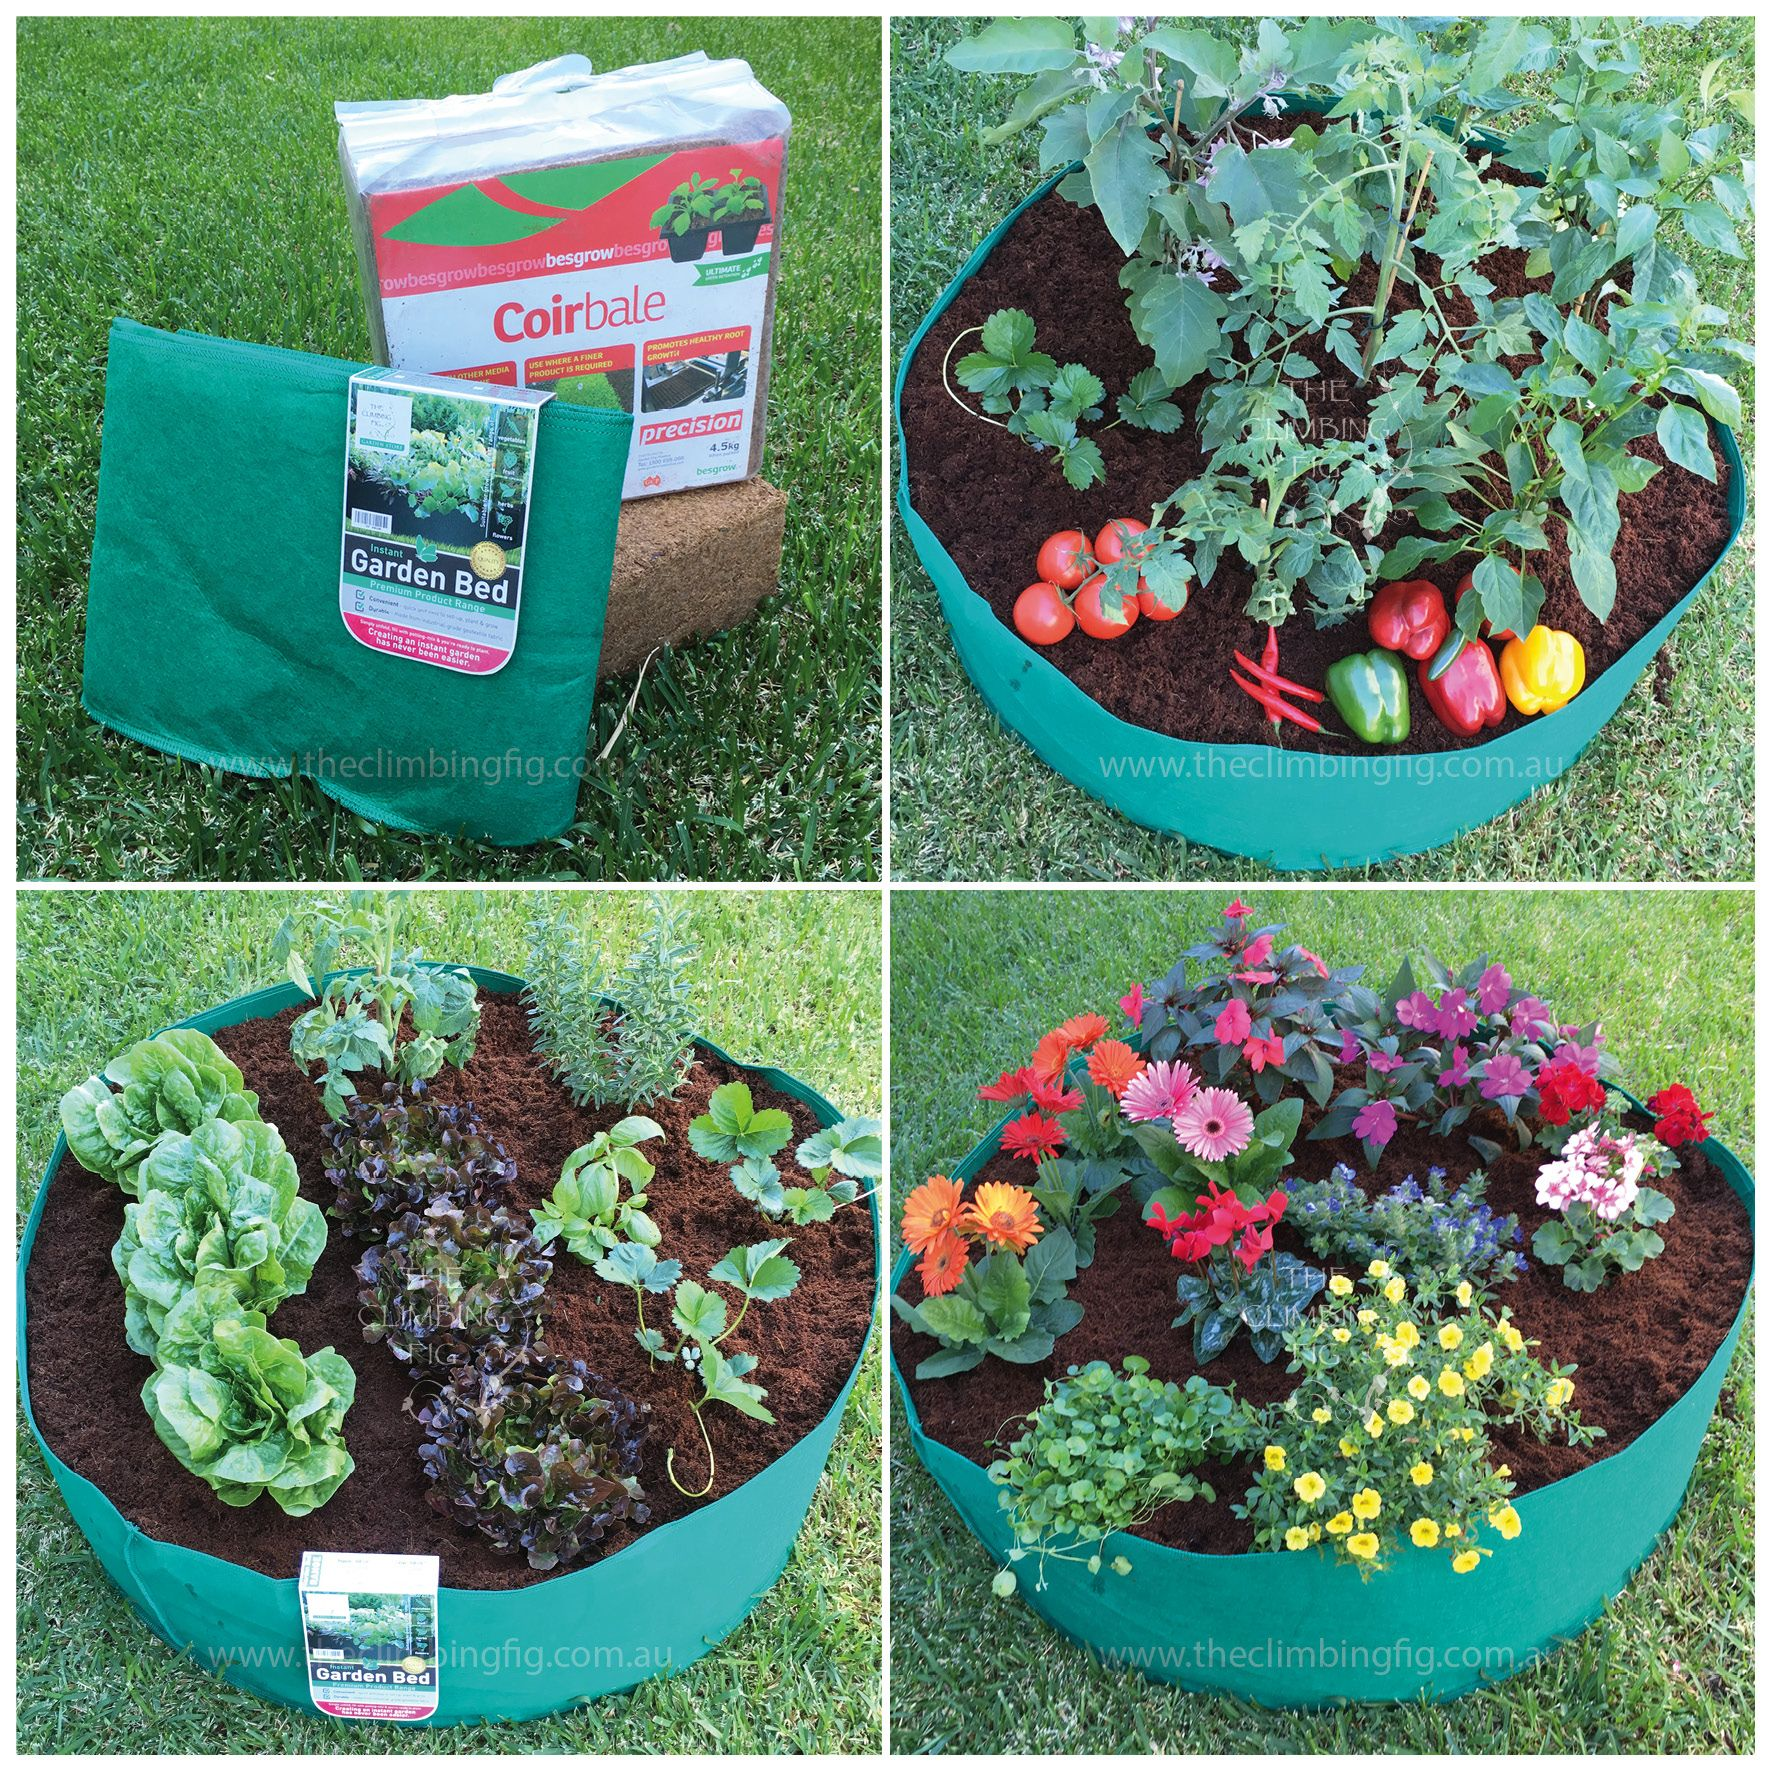 Plant Propagation Kits With Jiffy, Fertiliser Options